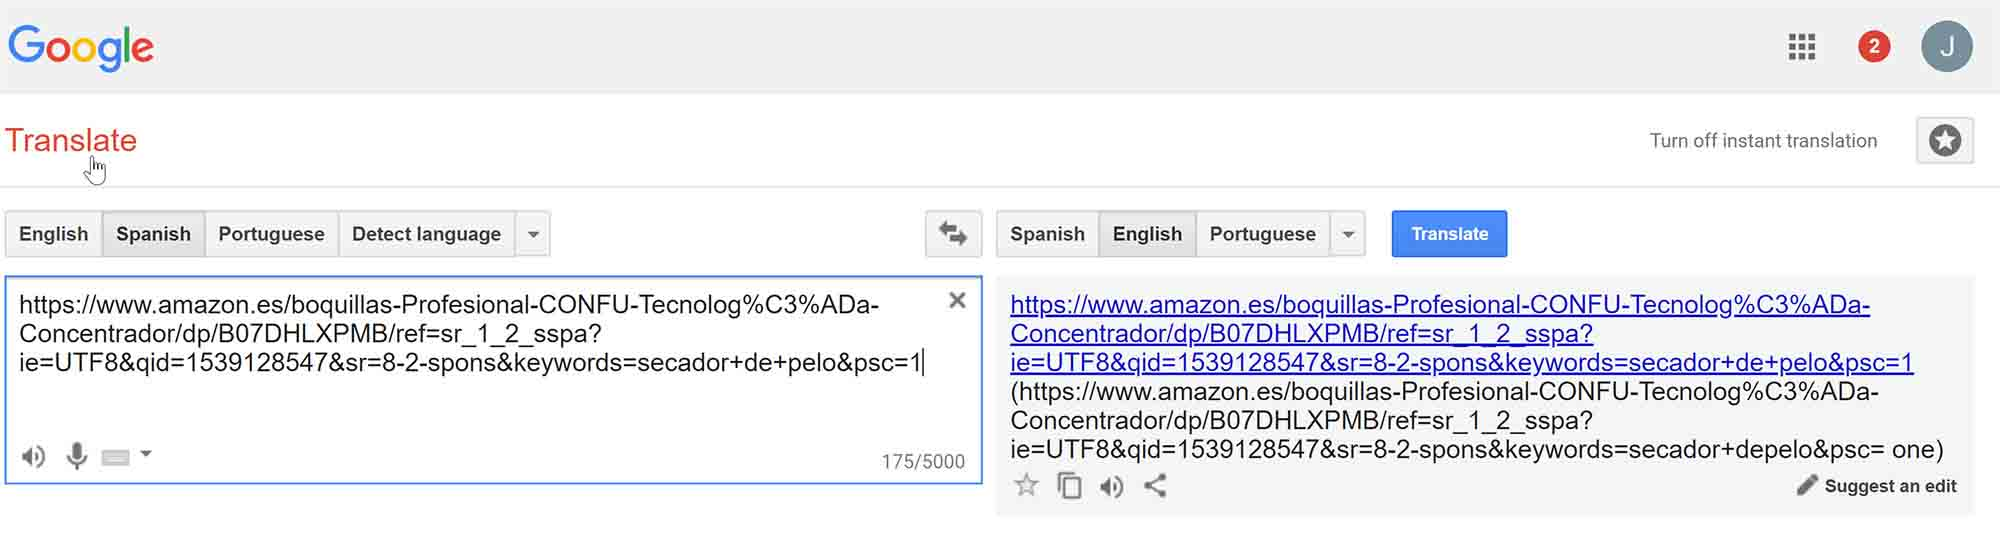 google translate url